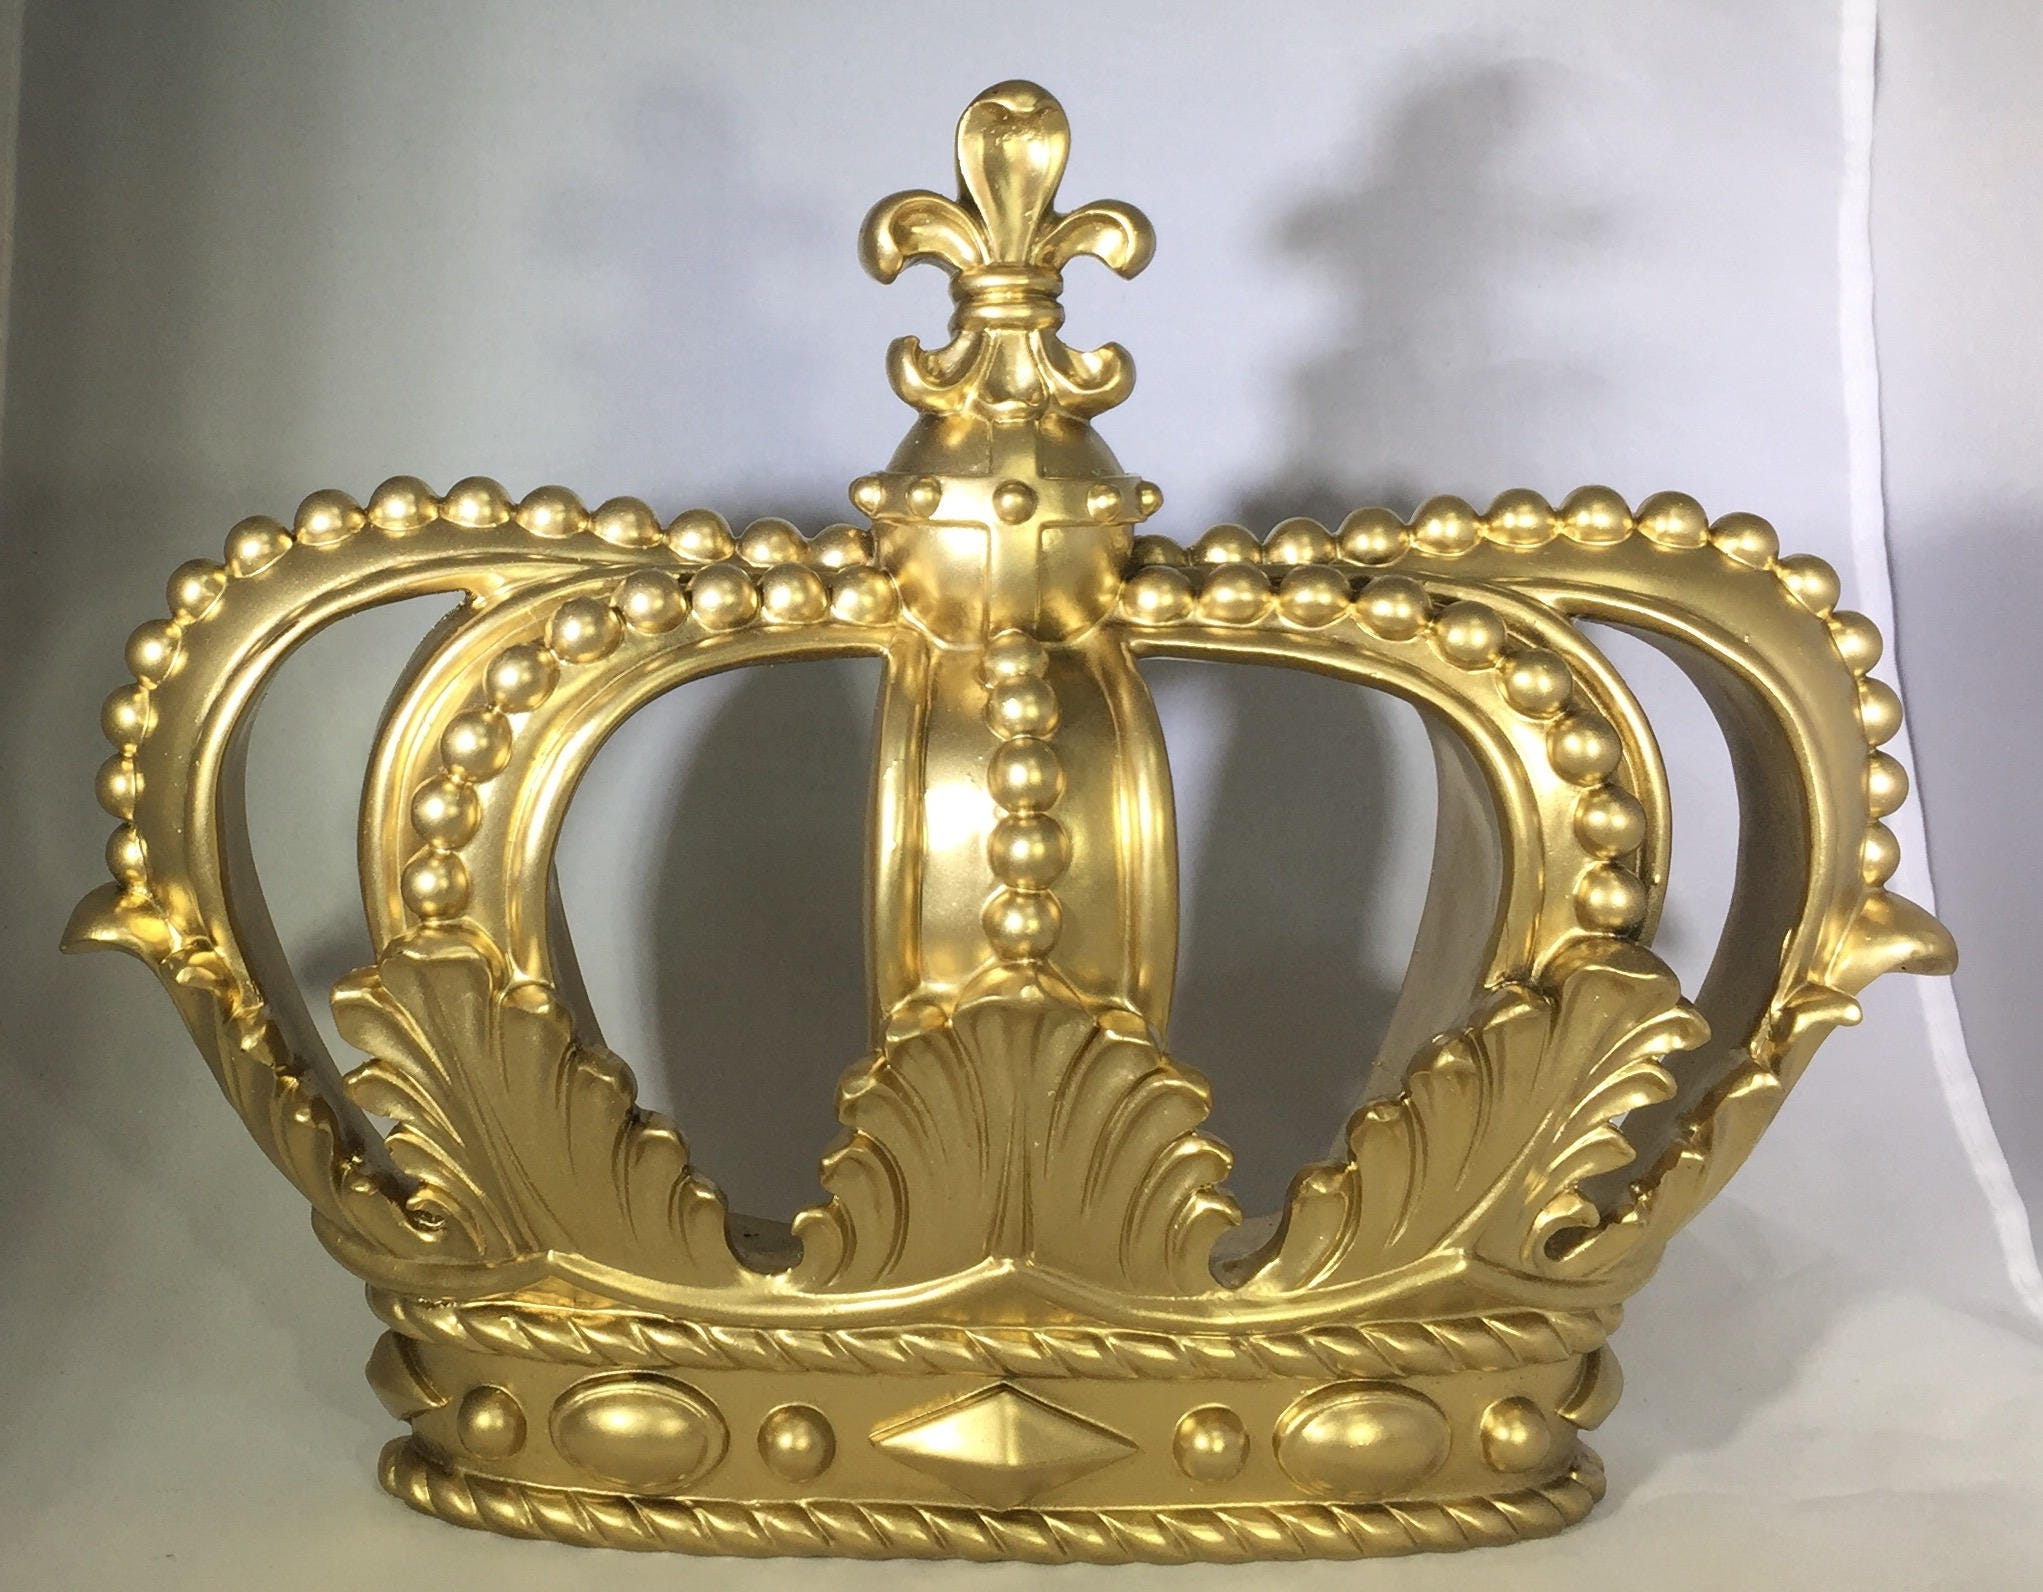 Black Crown Wall Decor : Gold crown wall decor metallic goldcanopy crownroyal prince